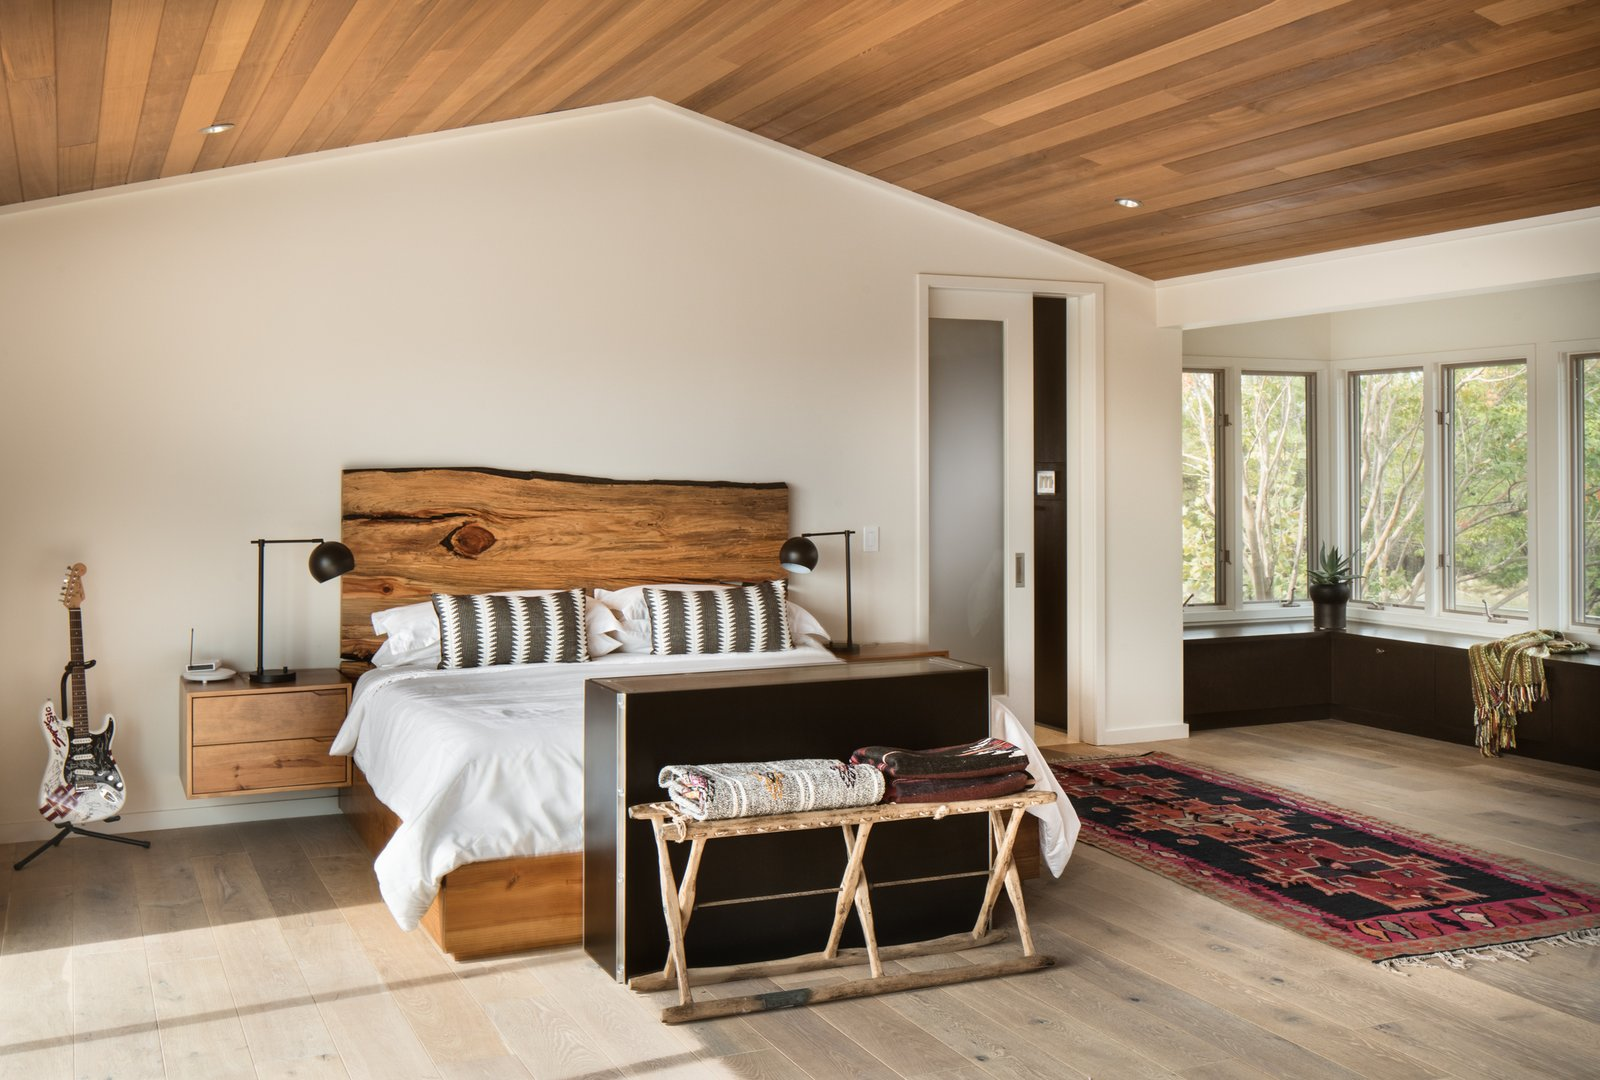 Bedroom, Bed, Storage, Recessed Lighting, Night Stands, and Light Hardwood Floor Master bedroom  River Garden Trail Residence by Texas Construction Company